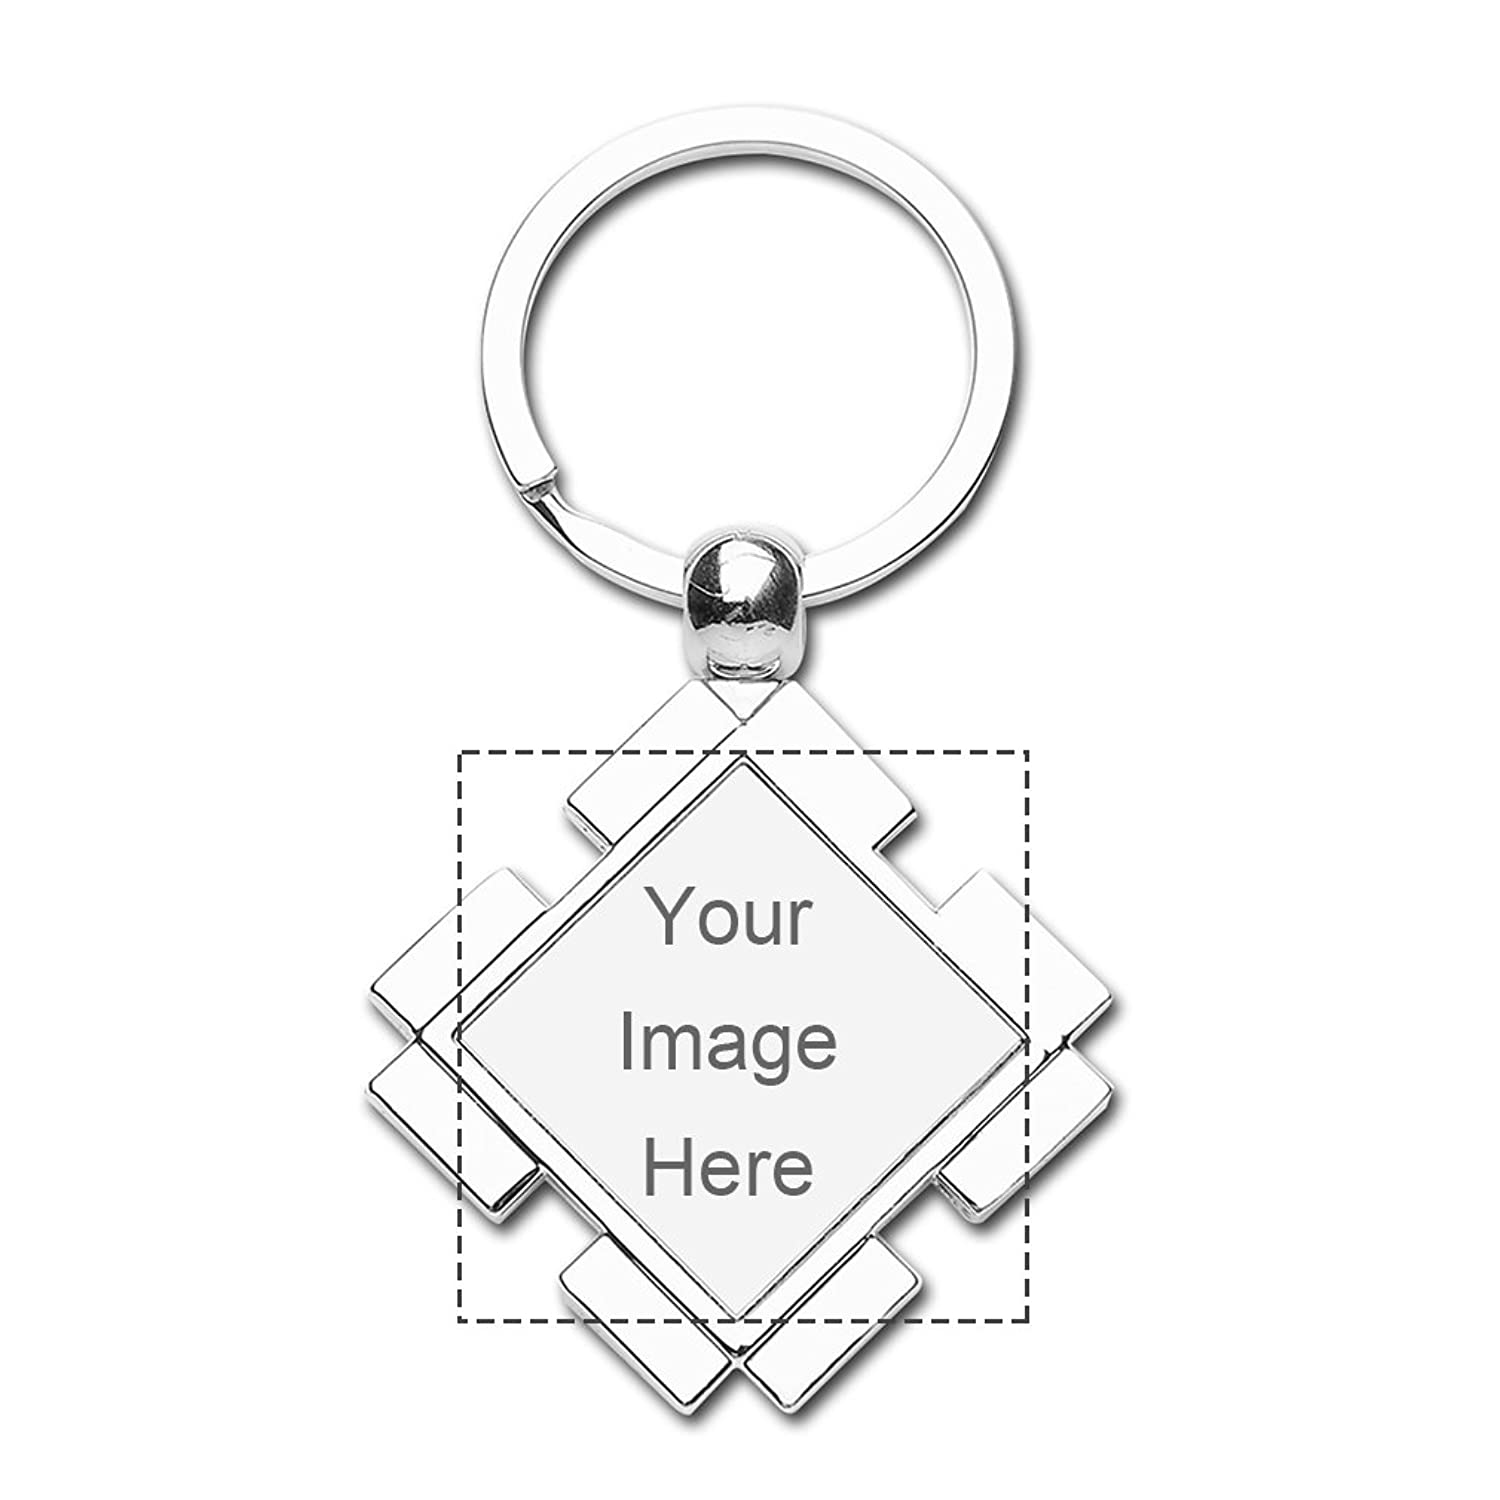 Custom Diamond Keychain Design Your Own Print Image or Message Keychain Set